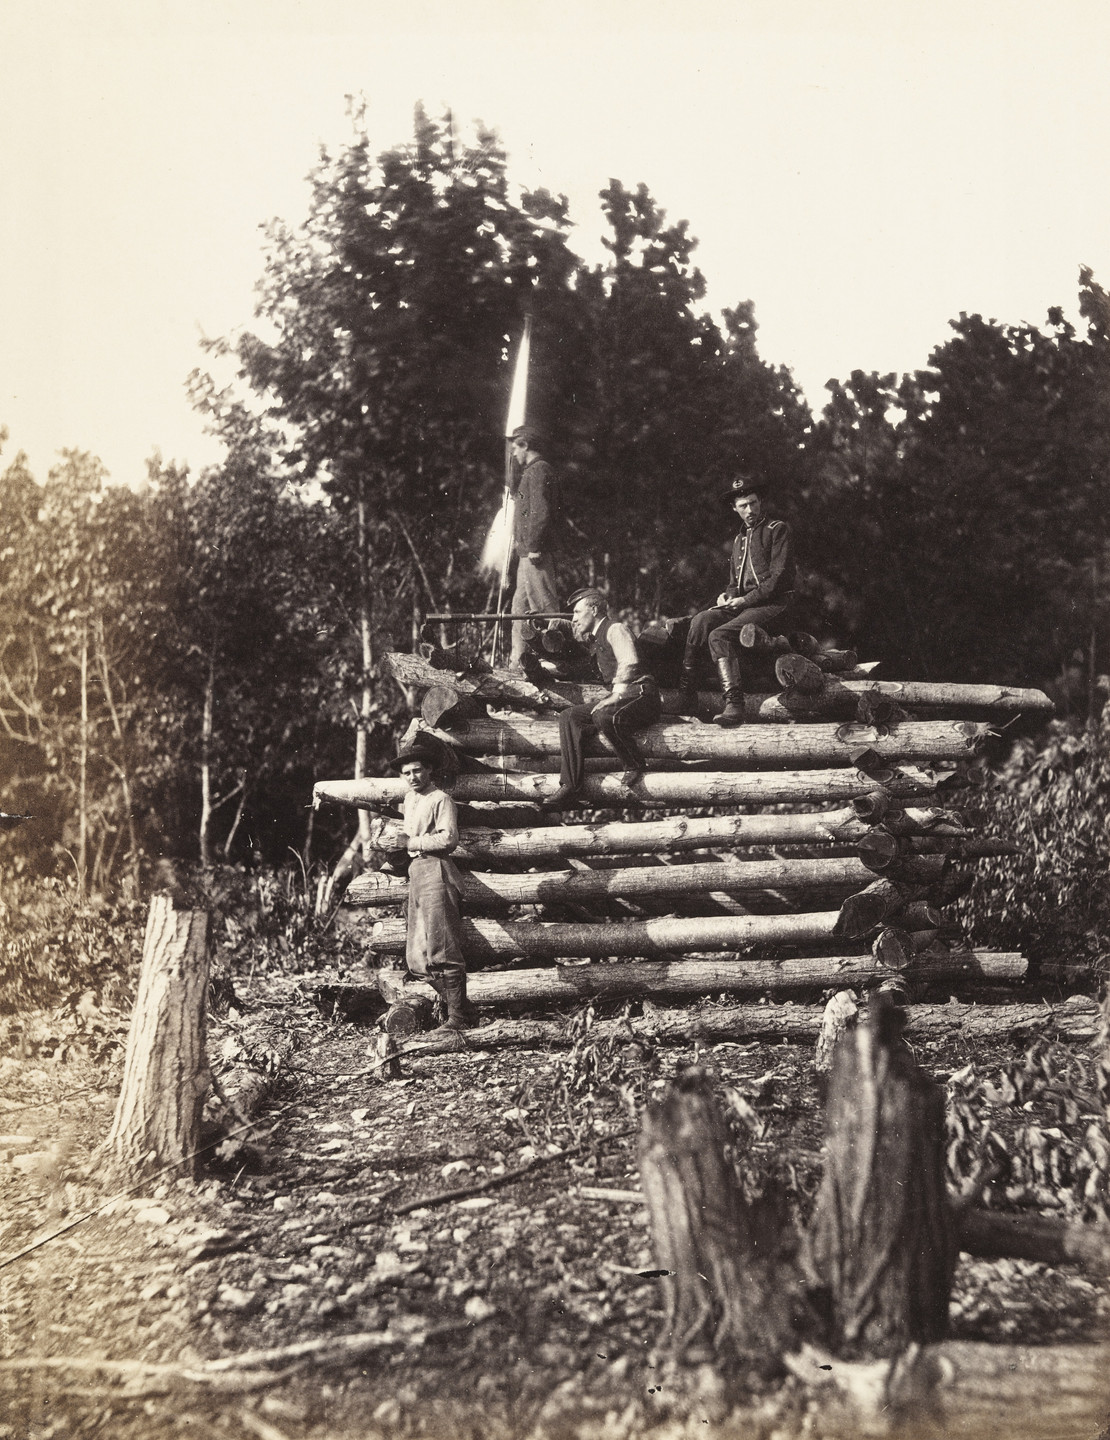 Alexander Gardner, Timothy O'Sullivan. Signal Tower on Elk Mountain, Maryland. September, 1862